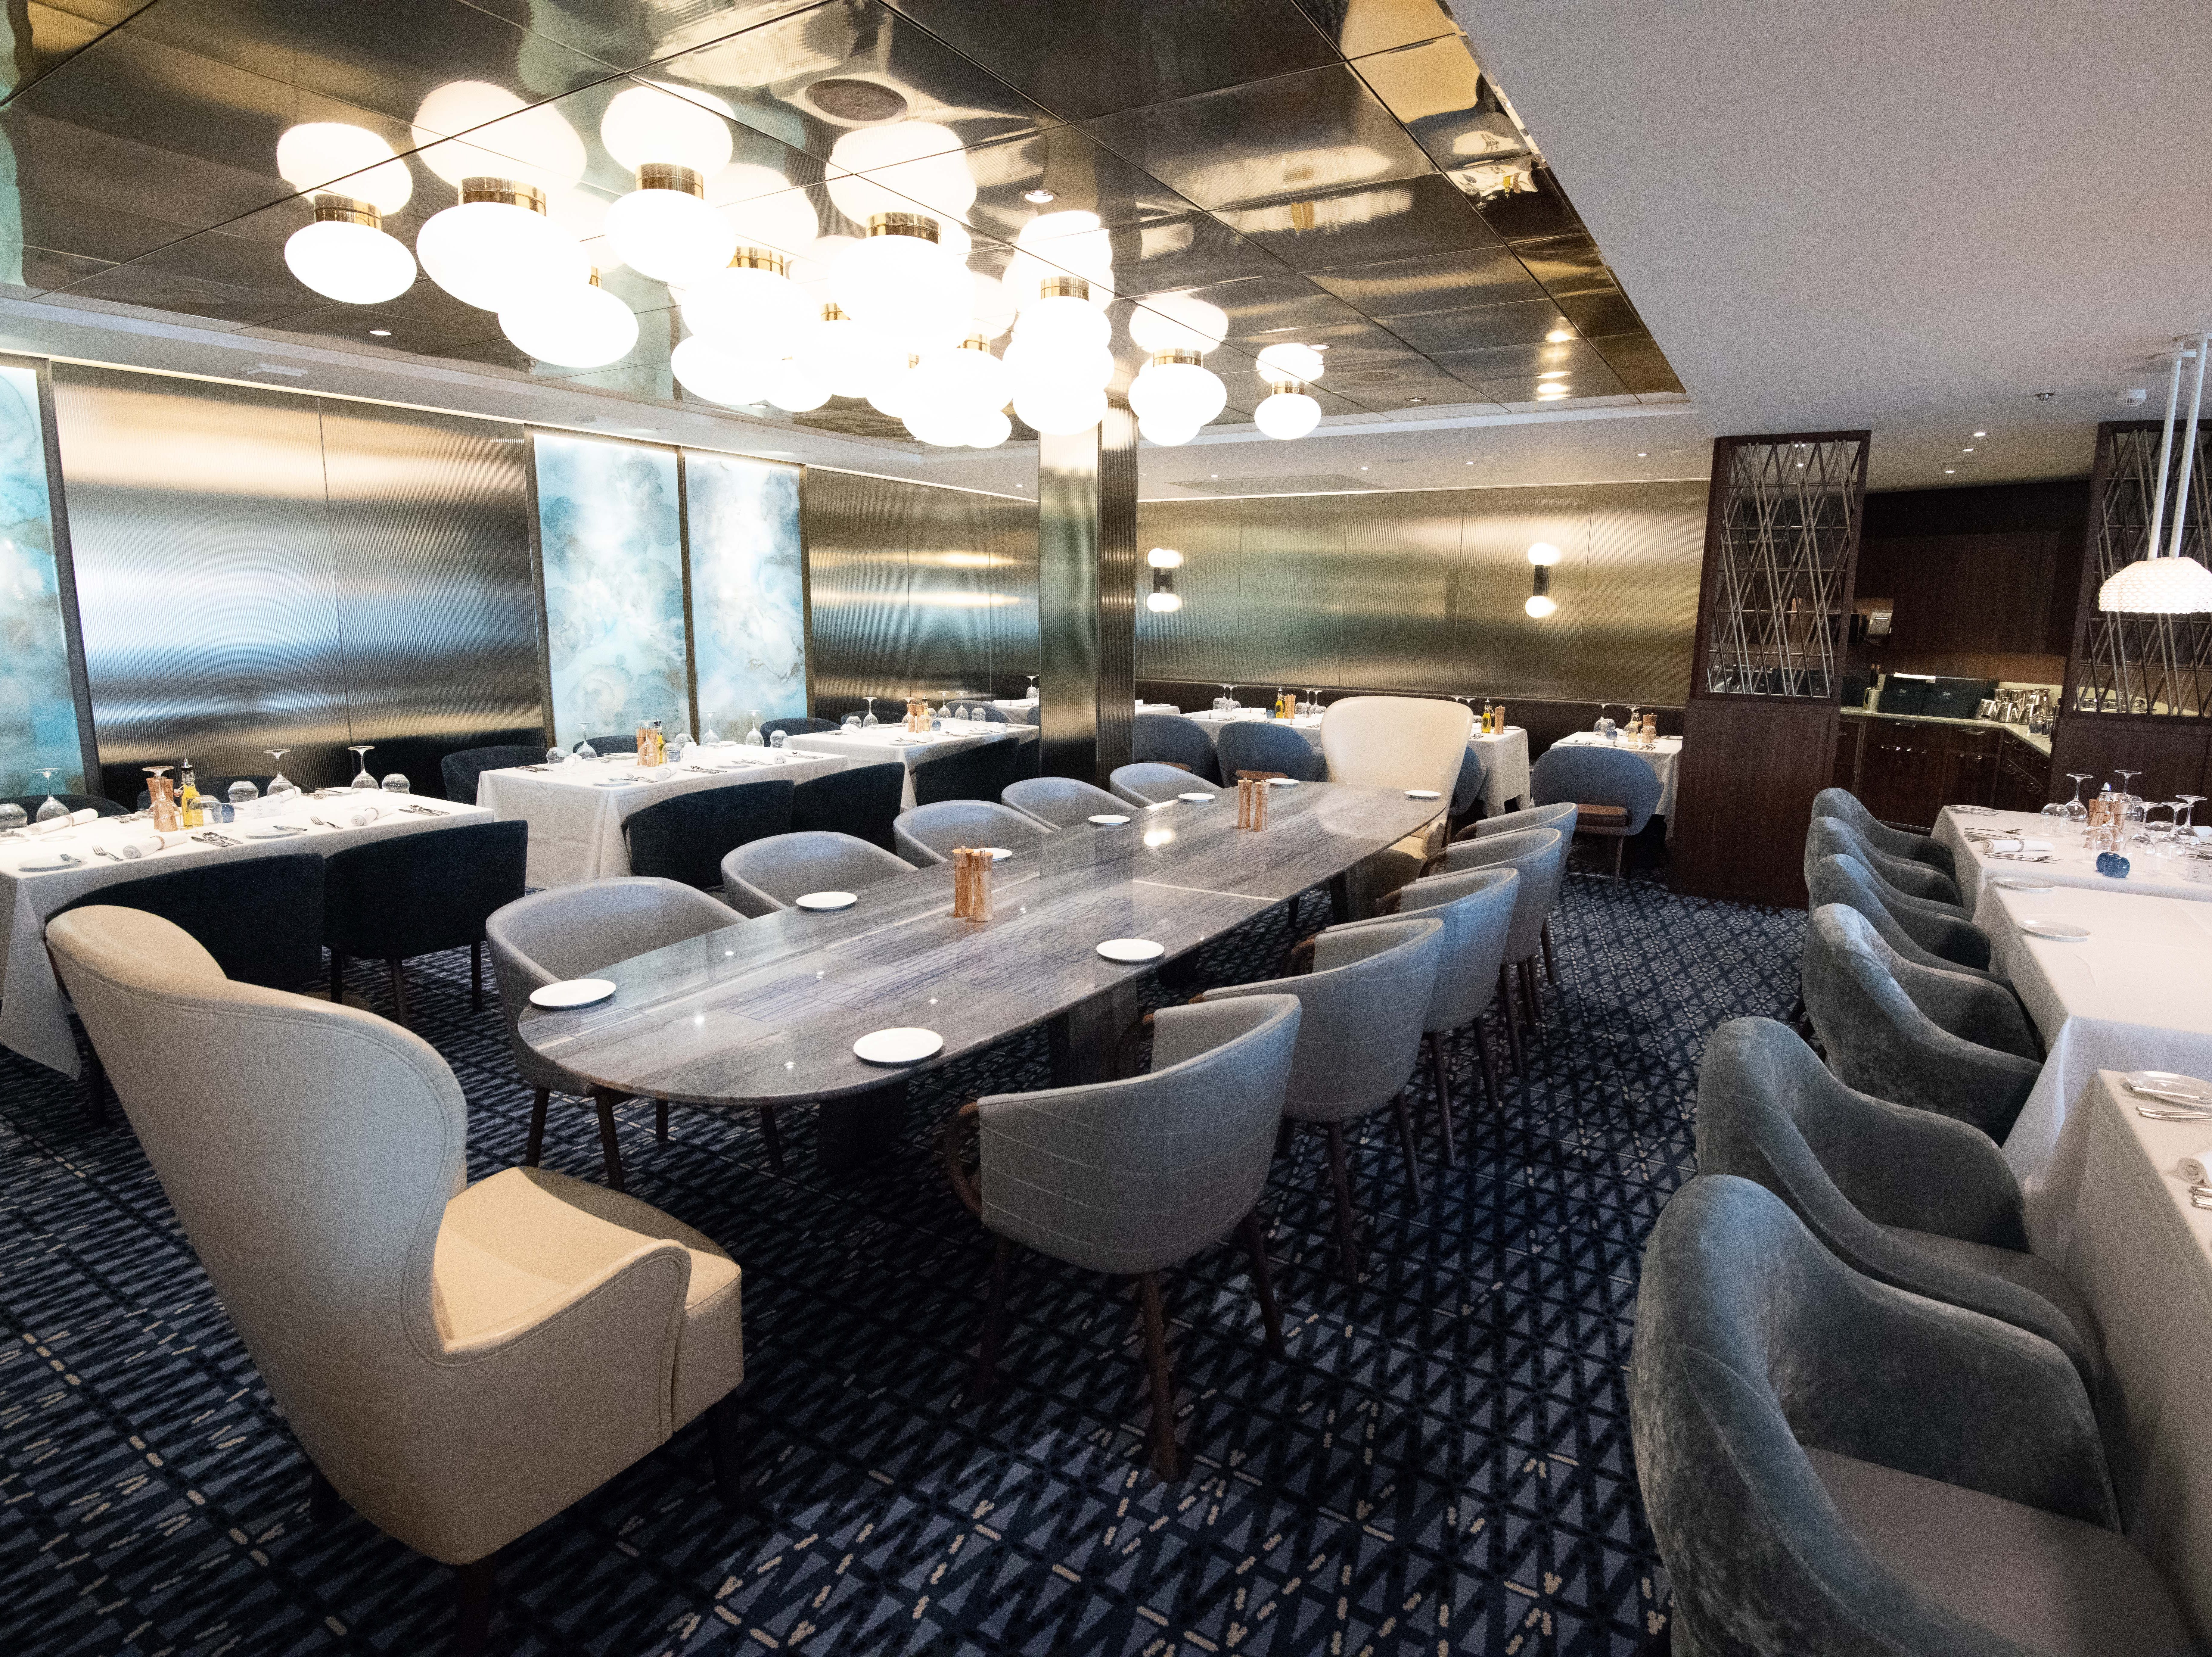 Celebrity Edge's four main included-in-the-fare dining venues include Cypress Restaurant, which serves Mediterranean fare and is a nod to Celebrity's Greek heritage.